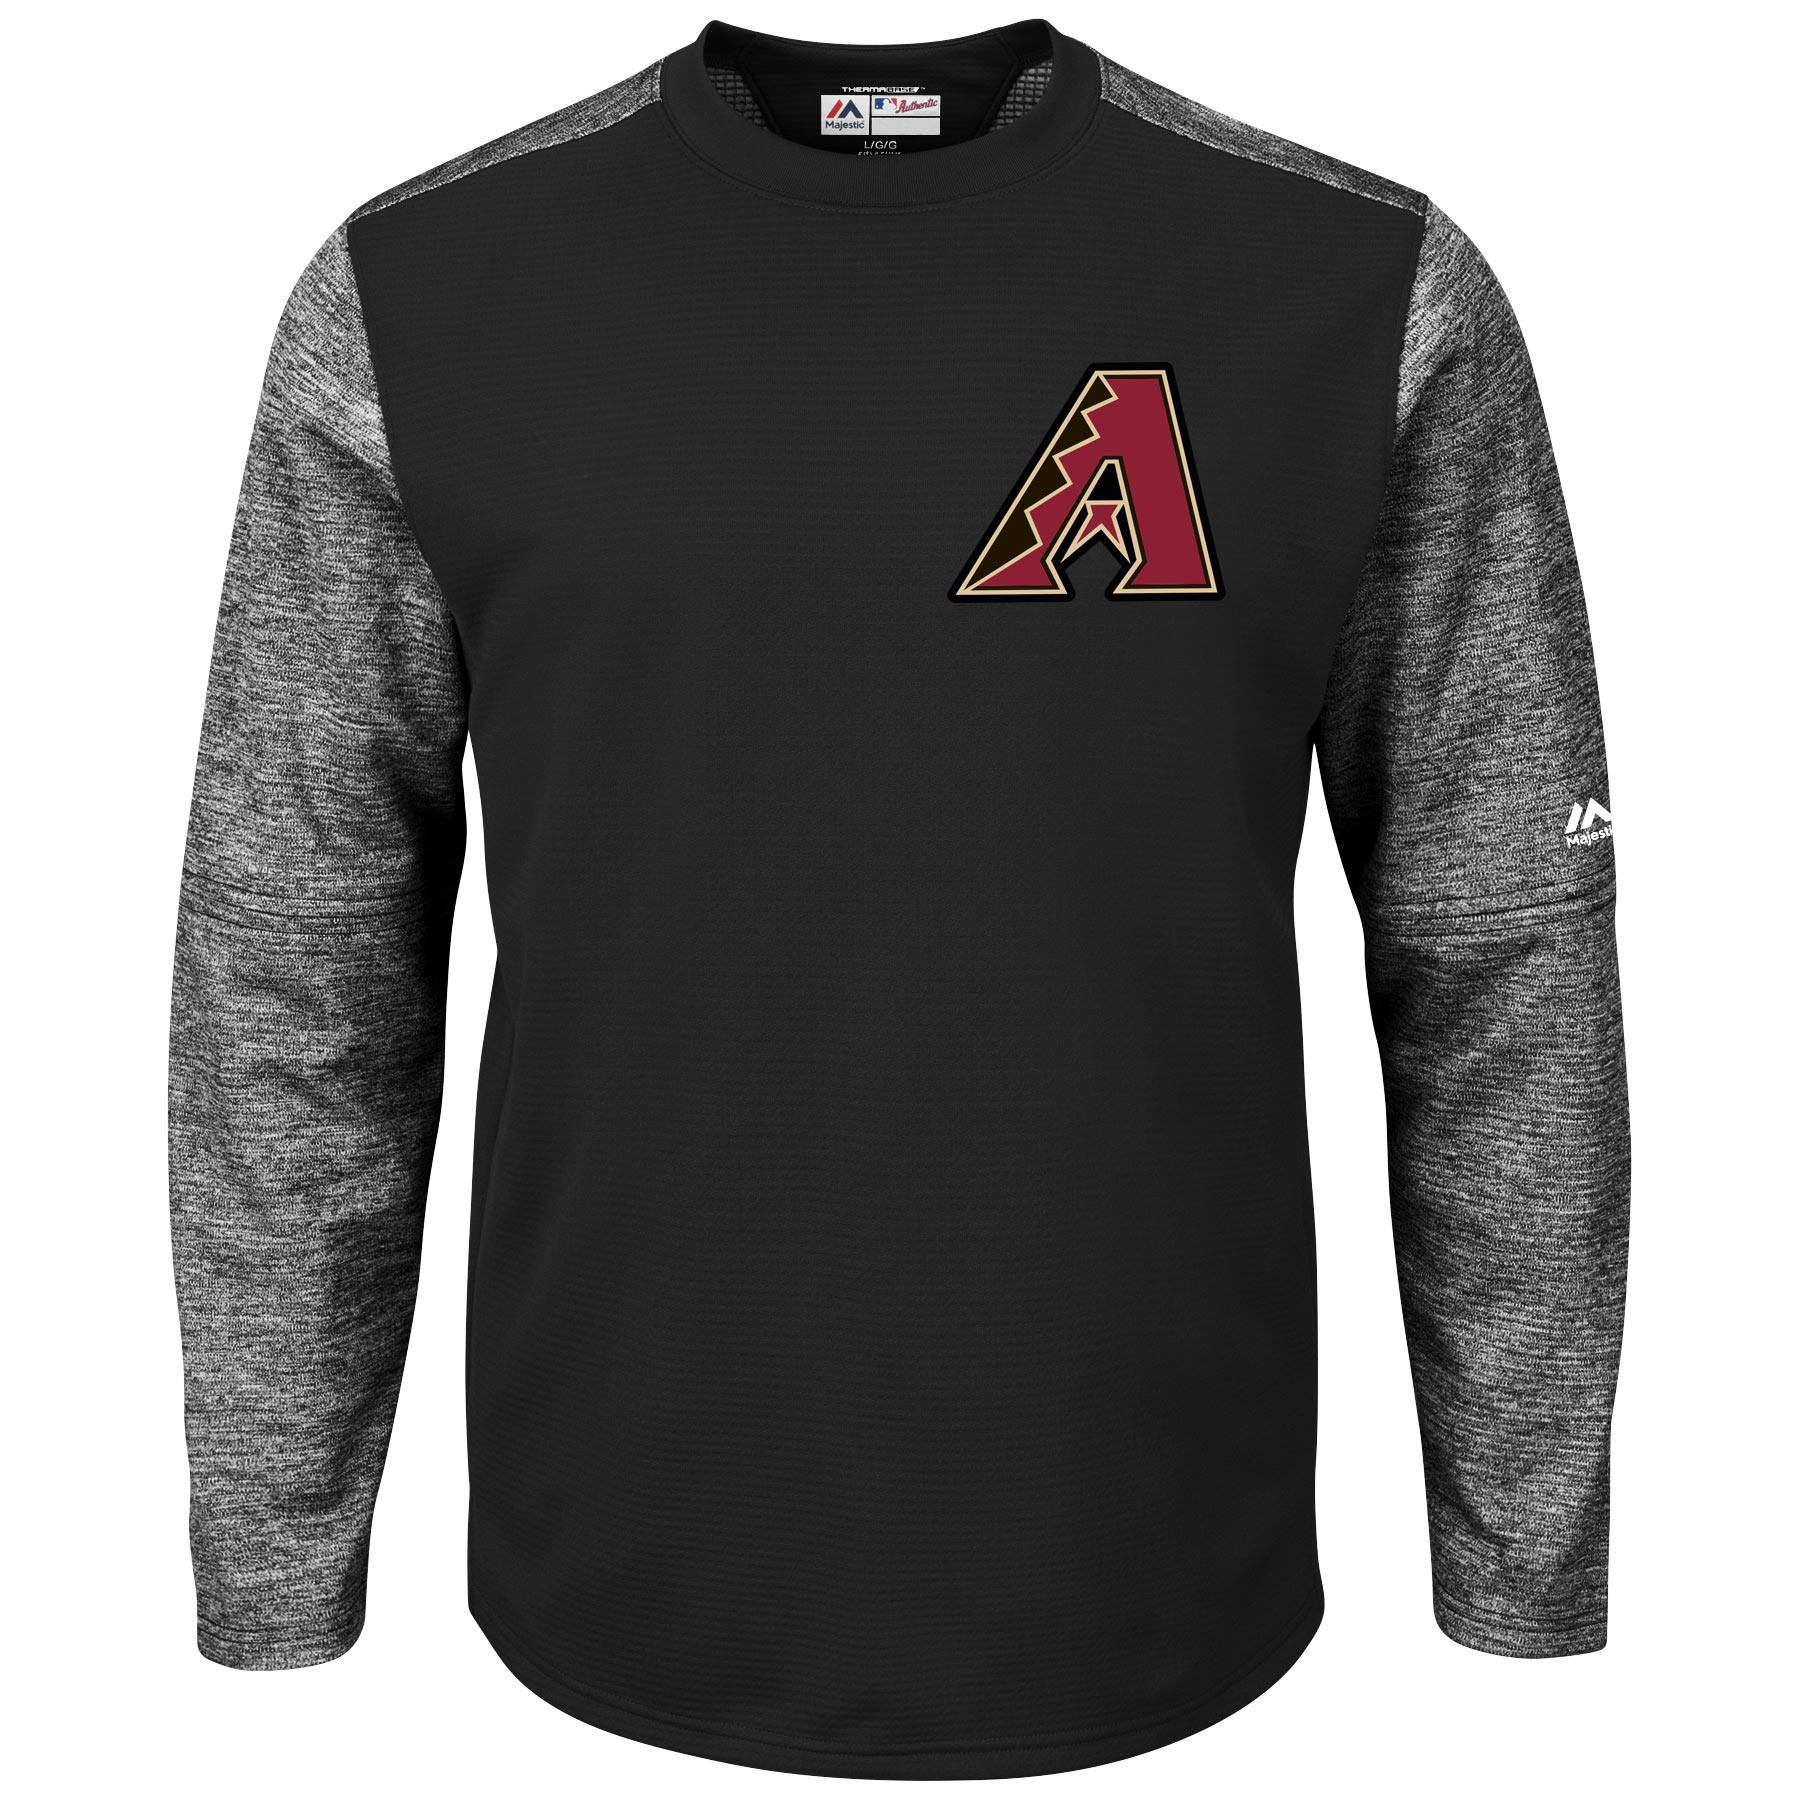 Arizona Diamondbacks Majestic Authentic Collection On-Field Tech Fleece Therma Base Pullover Sweatshirt Black by MAJESTIC LSG